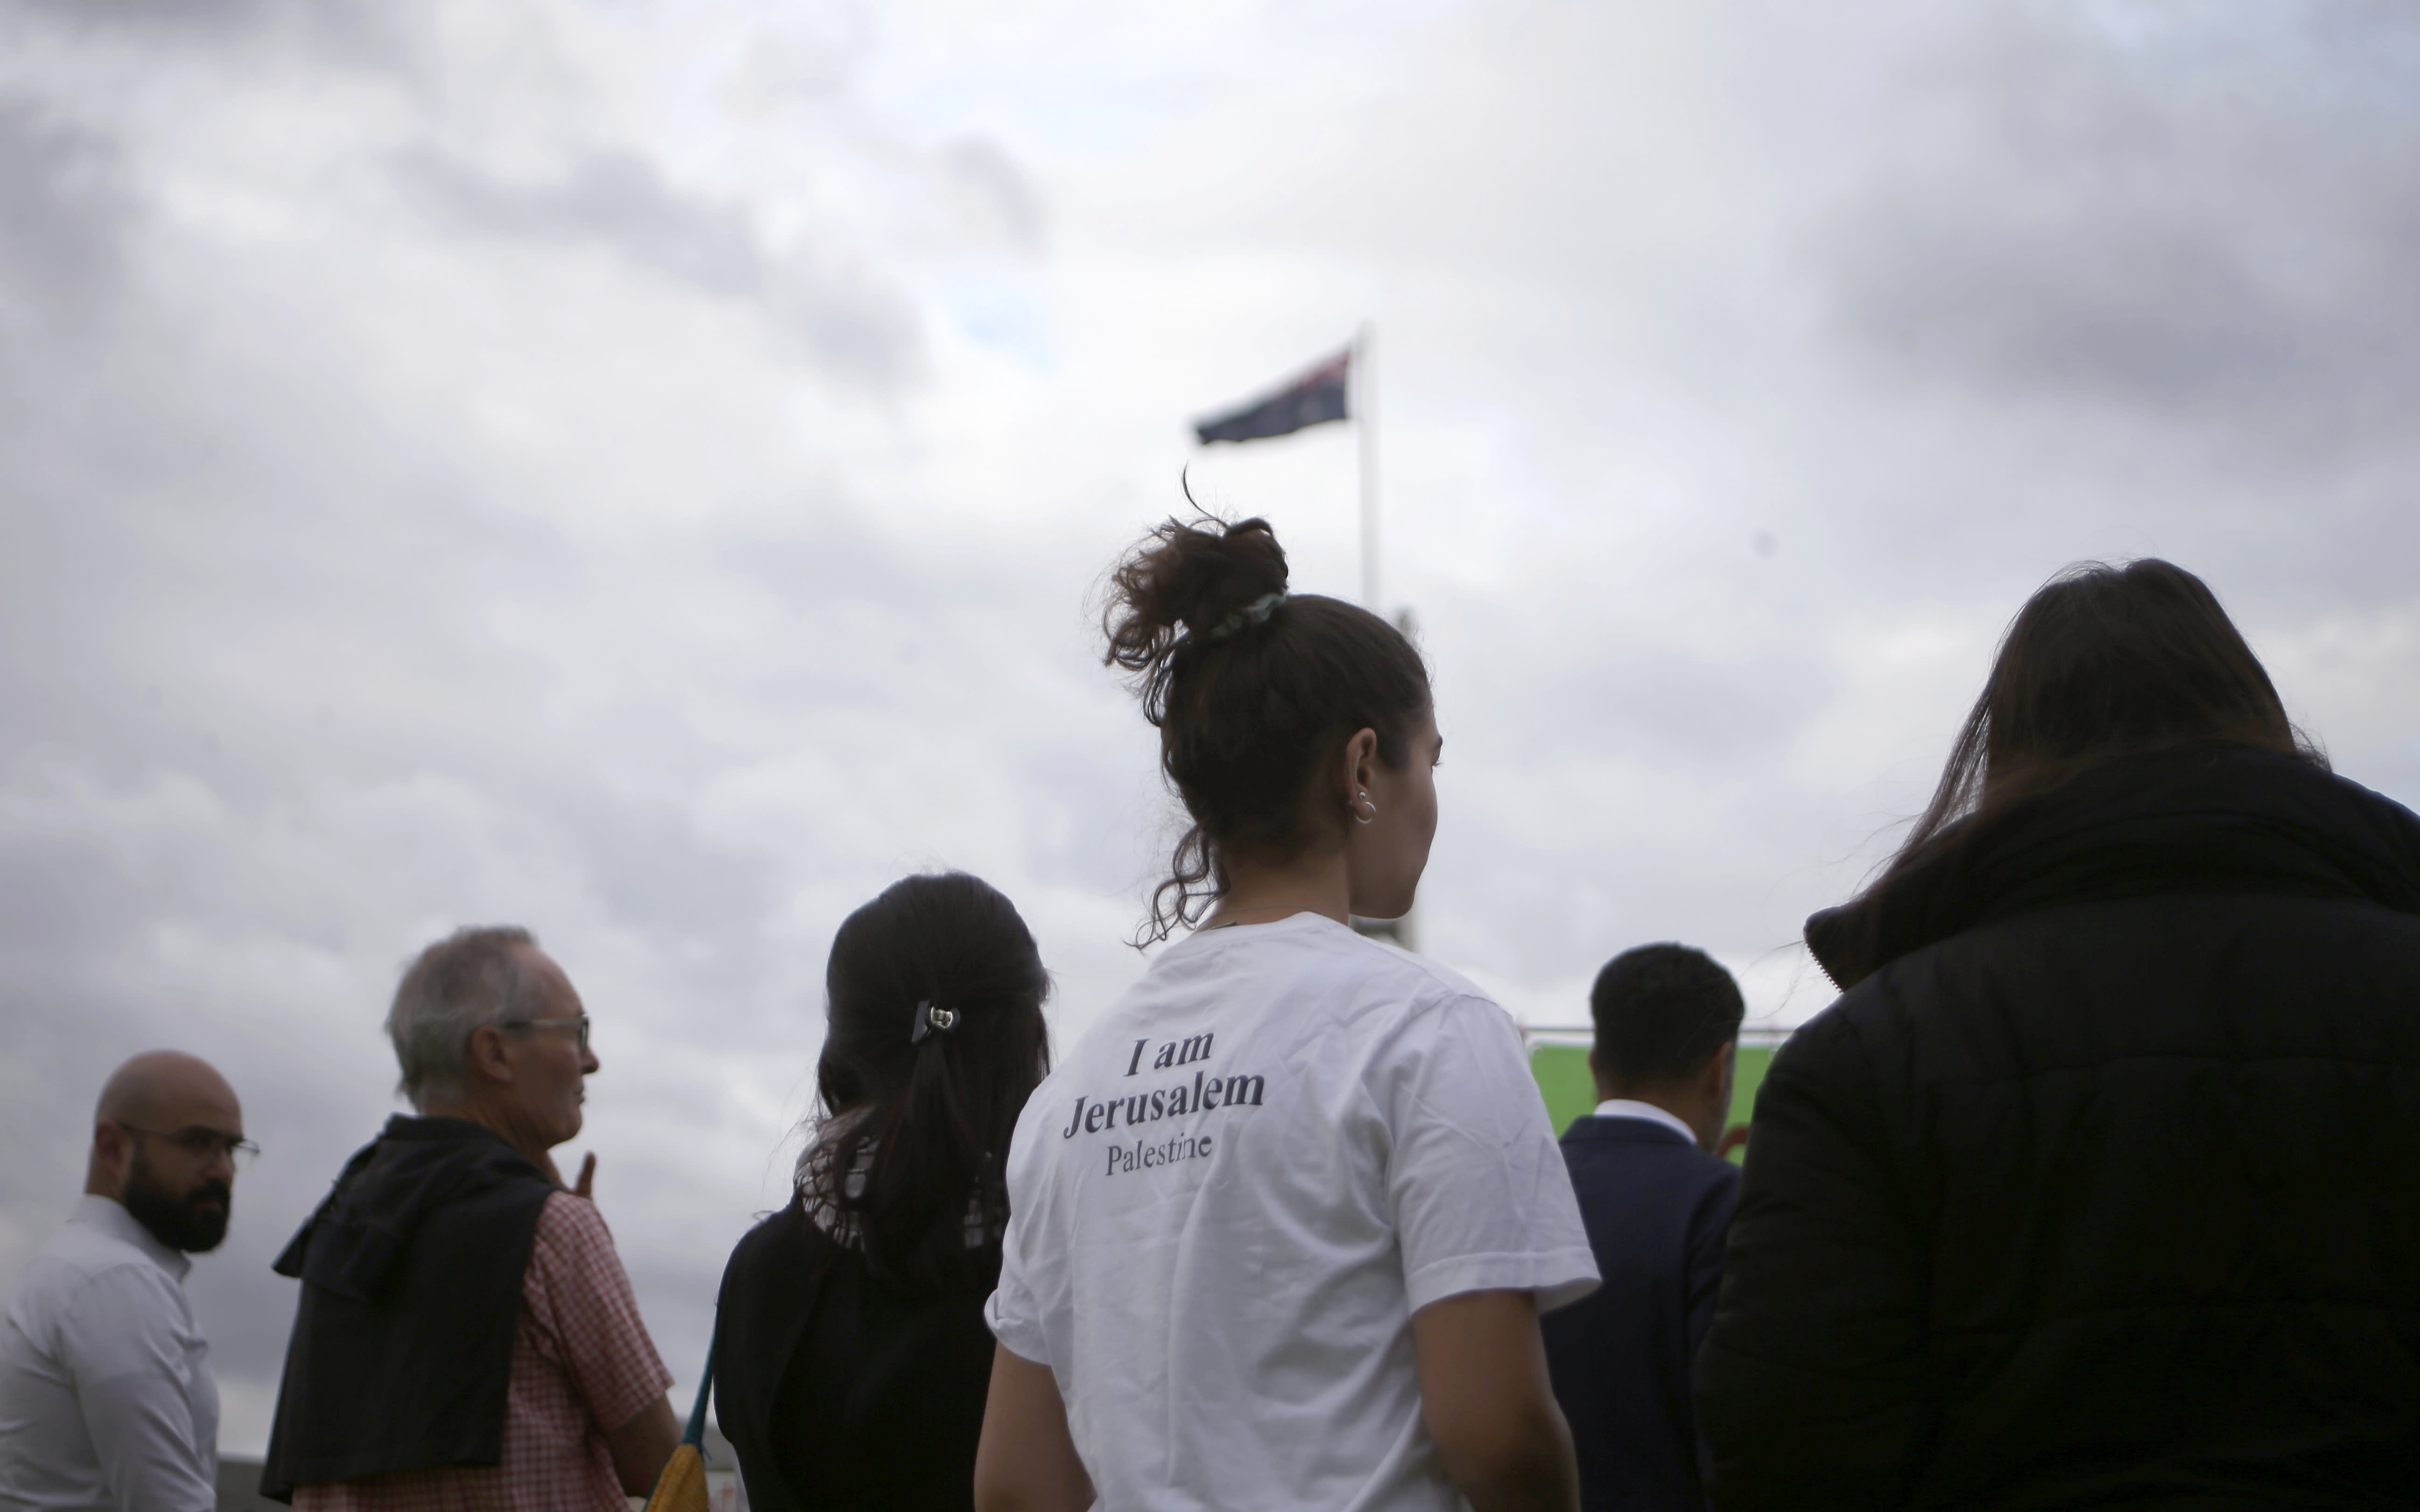 Around 50 pro-Palestinian demonstrators protest outside Parliament House in Canberra, Australia, on Wednesday, Feb. 26, 2020, ahead of Israeli President Reuven Rivlin's visit. The protest was organized by the Australia Palestine Advocacy Network which advocates for justice and peace for Palestinians. (AP Photo/Rod McGuirk)